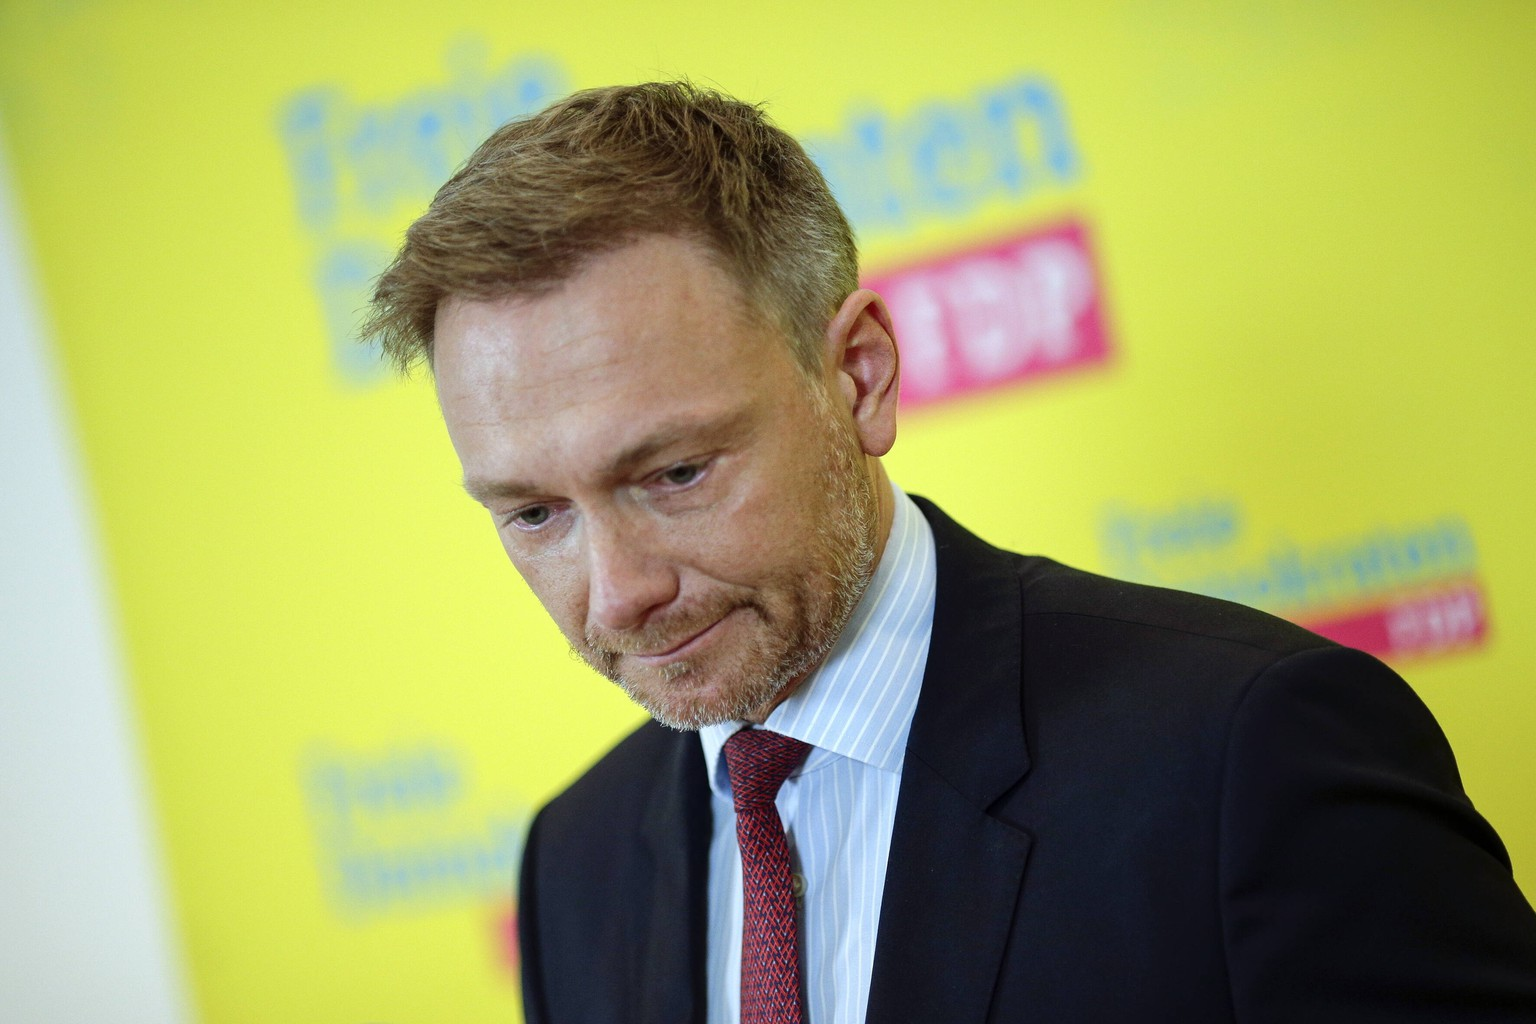 10.02.2020, Berlin, Deutschland - Pressestatement von FDP-Chef Christian Lindner zum AKK-Rueckzug. Foto: Christian Lindner, FDP-Bundesvorsitzender, bei einem Pressestatement vor Medienvertretern, in der FDP-Parteizentrale in Berlin. *** 10 02 2020, Berlin, Germany Press statement by FDP leader Christian Lindner on the AKK retreat Photo Christian Lindner, FDP national leader, at a press statement in front of media representatives, at the FDP party headquarters in Berlin